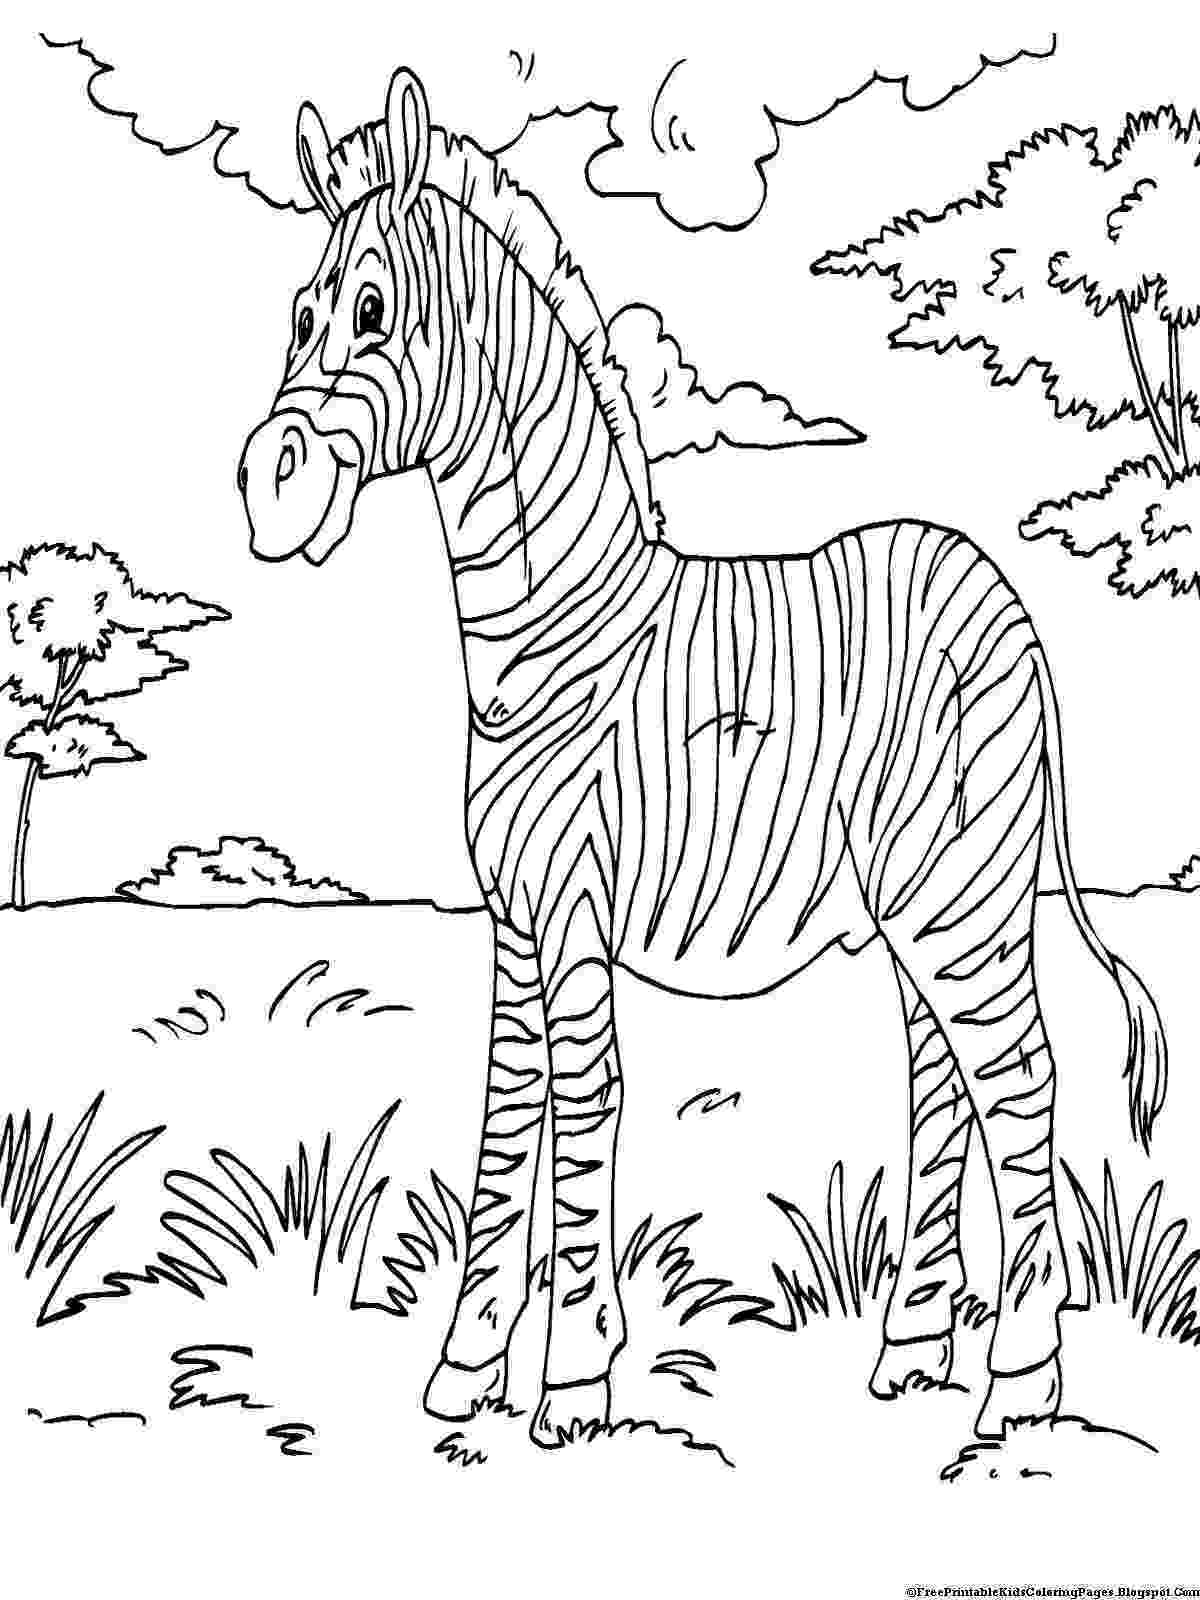 pictures to print zebra coloring pages free printable kids coloring pages pictures print to